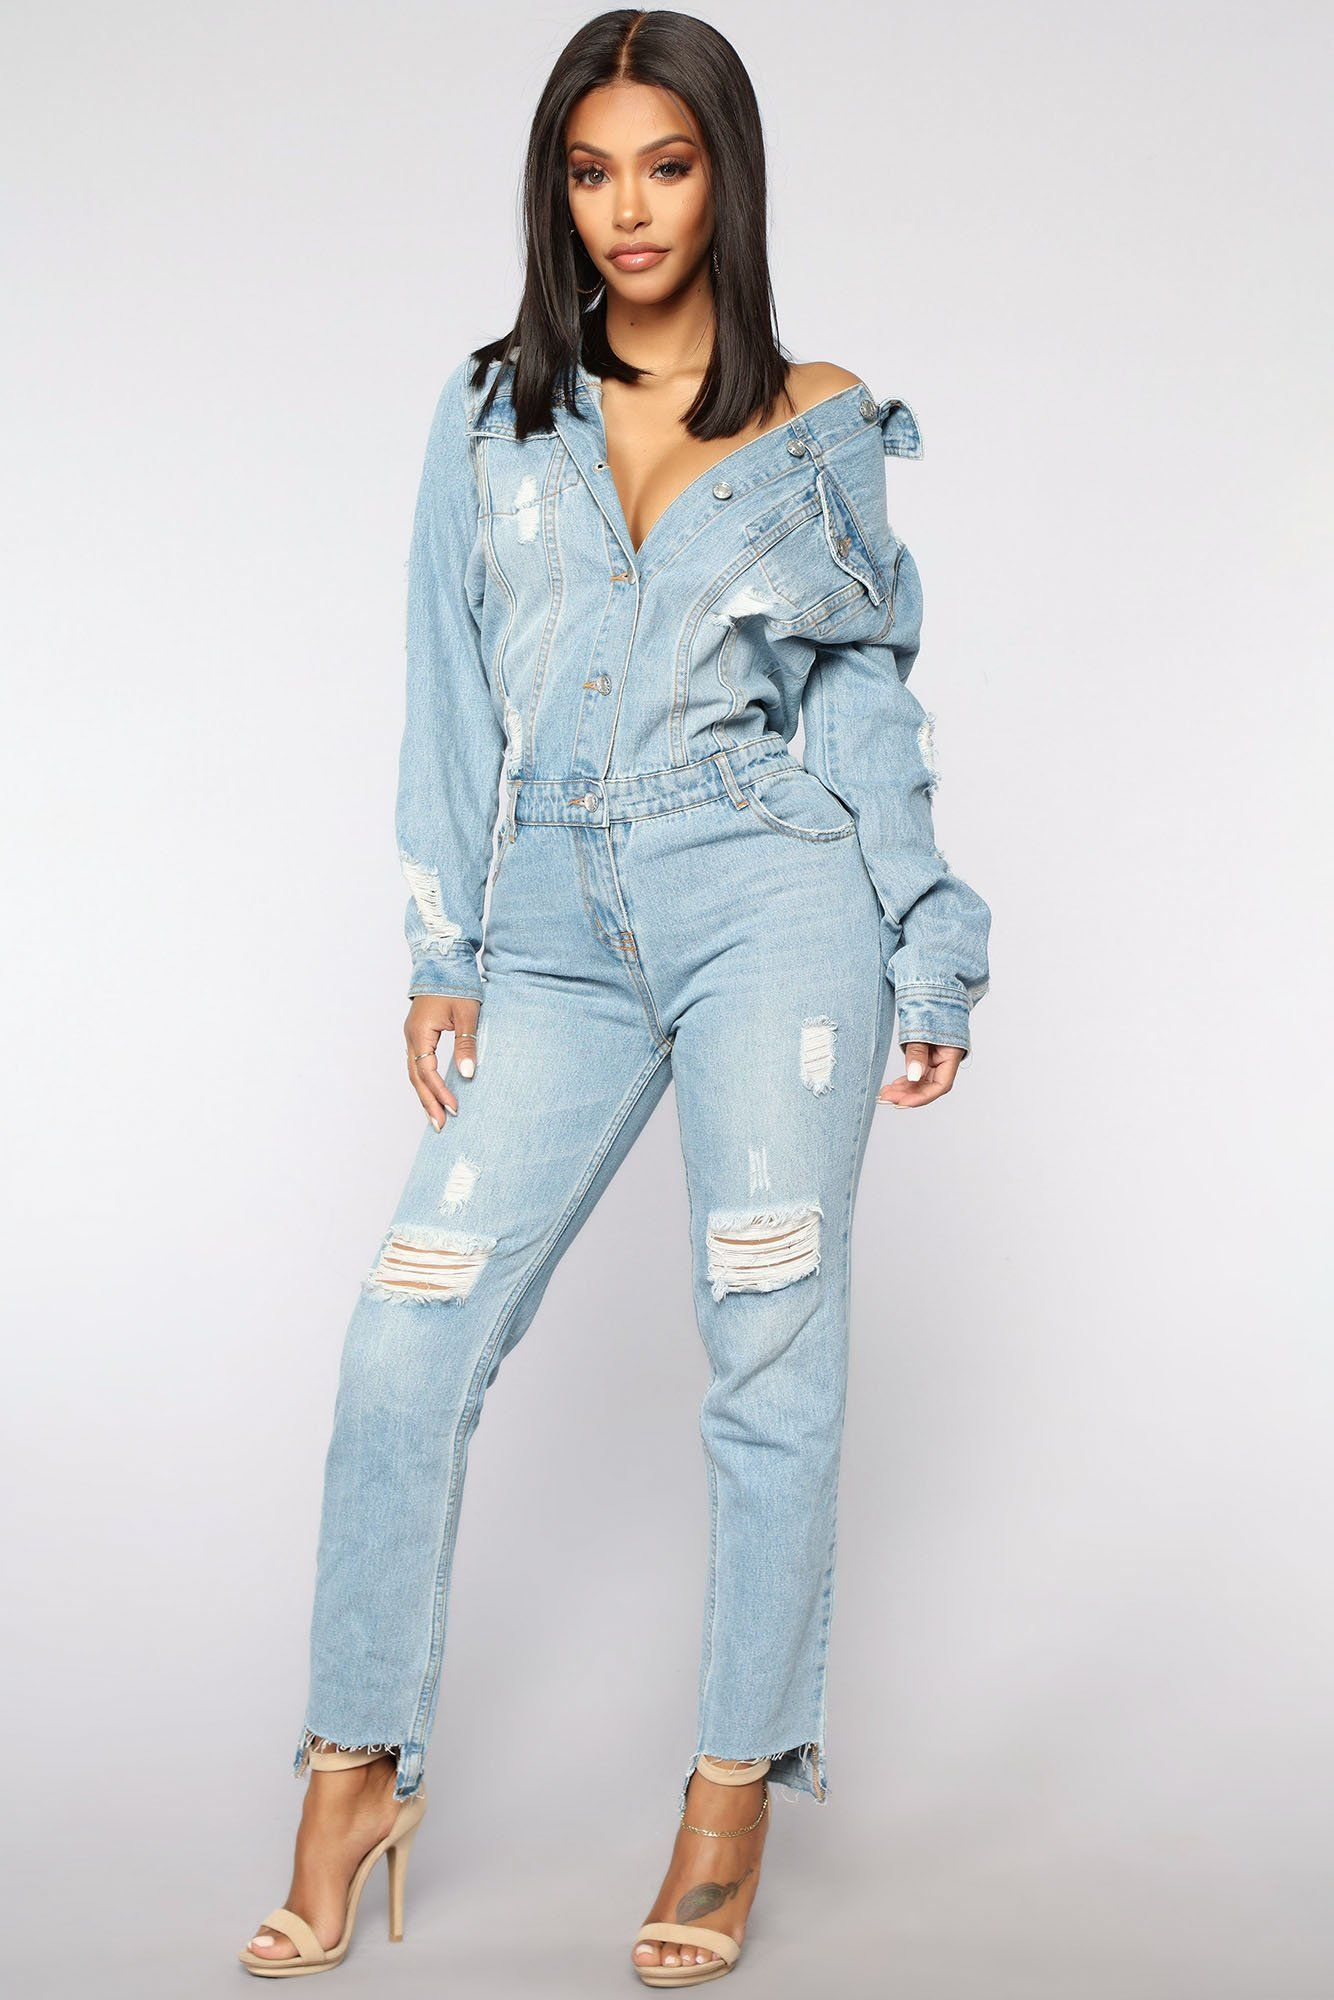 High Jump Denim Jumpsuit Medium Denim In 2020 Jumpsuit Fashion Fashion Nova Jumpsuit Denim Jumpsuit